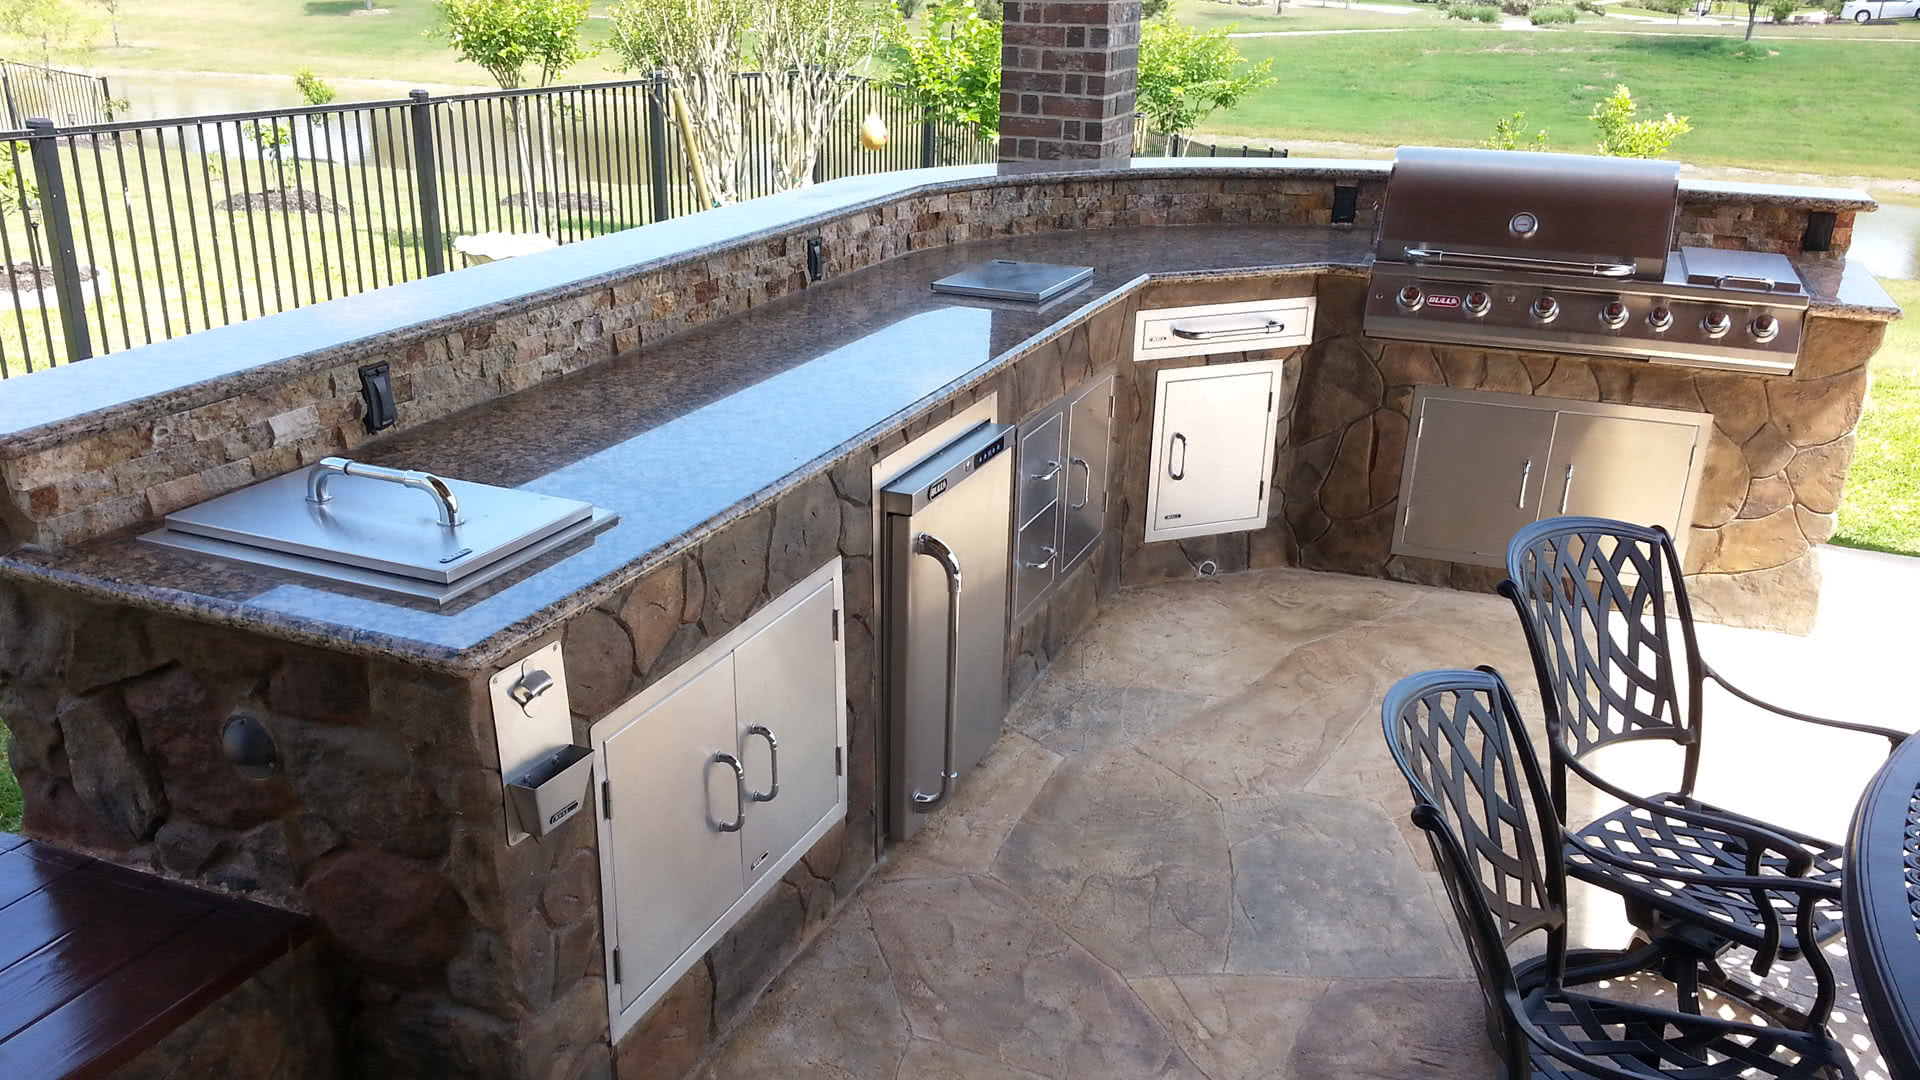 Outdoor Kitchens Design, Build & Install – Affordable ...